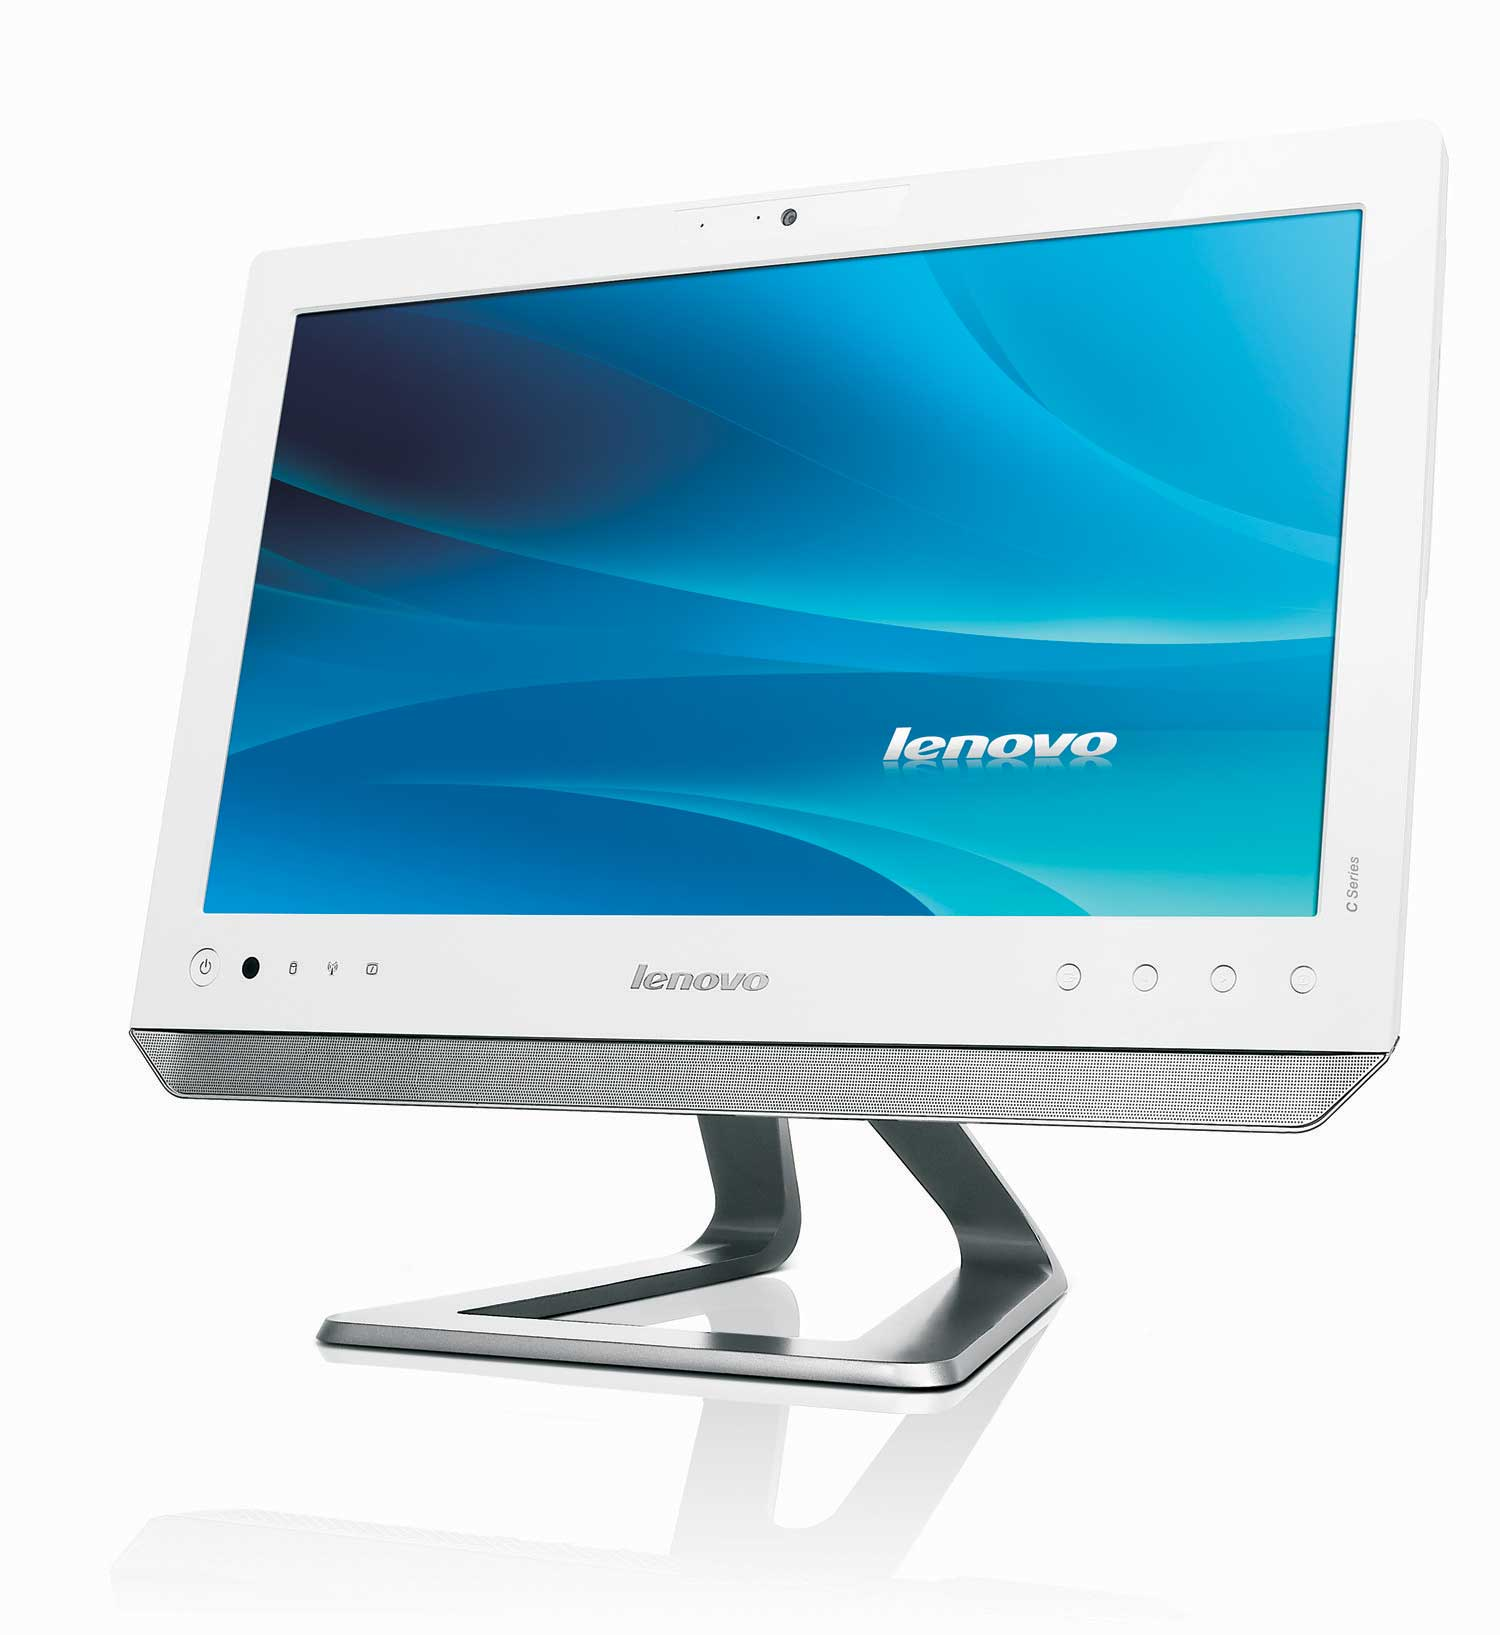 lenovo c325 20 inch multi touch all in one desktop pc. Black Bedroom Furniture Sets. Home Design Ideas